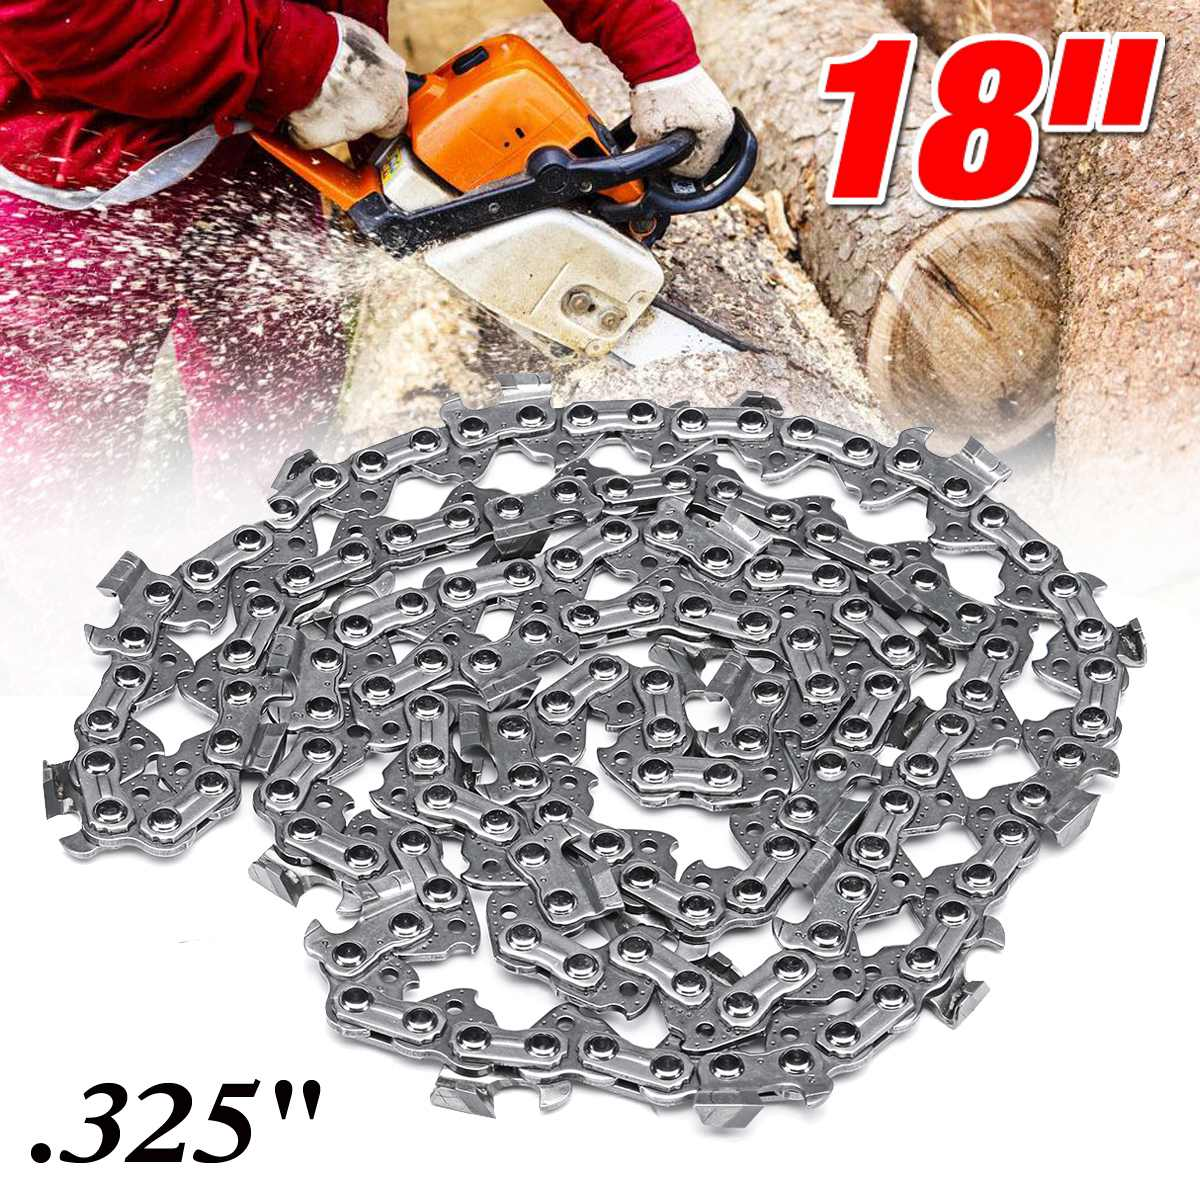 18 inch Chainsaw Chain 68 Link Bar 1.6mm x 0.325